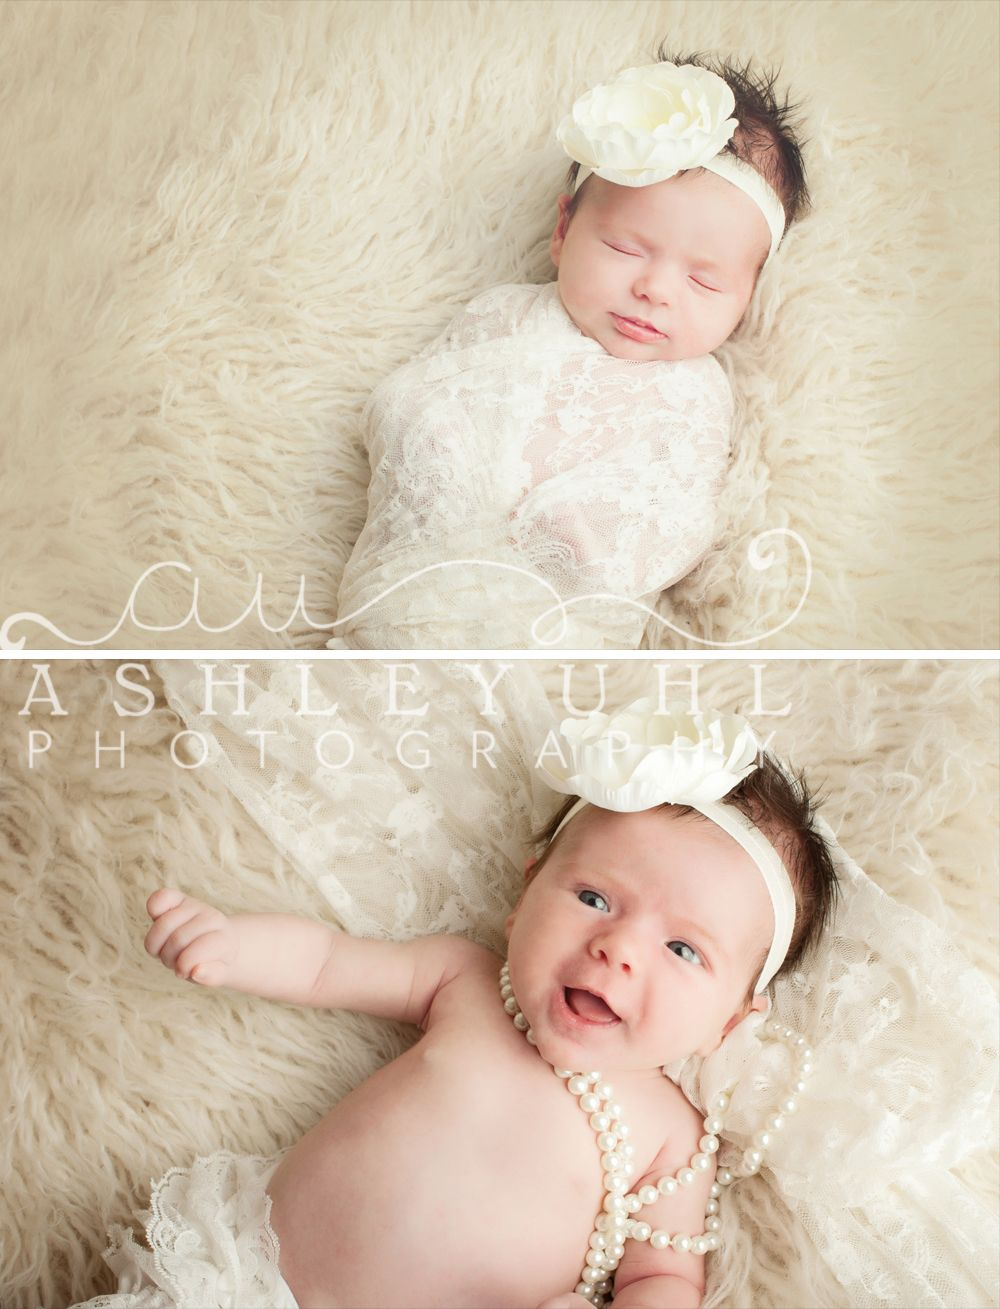 Photoshoot For 1 Month Baby Girl Newborn Photography